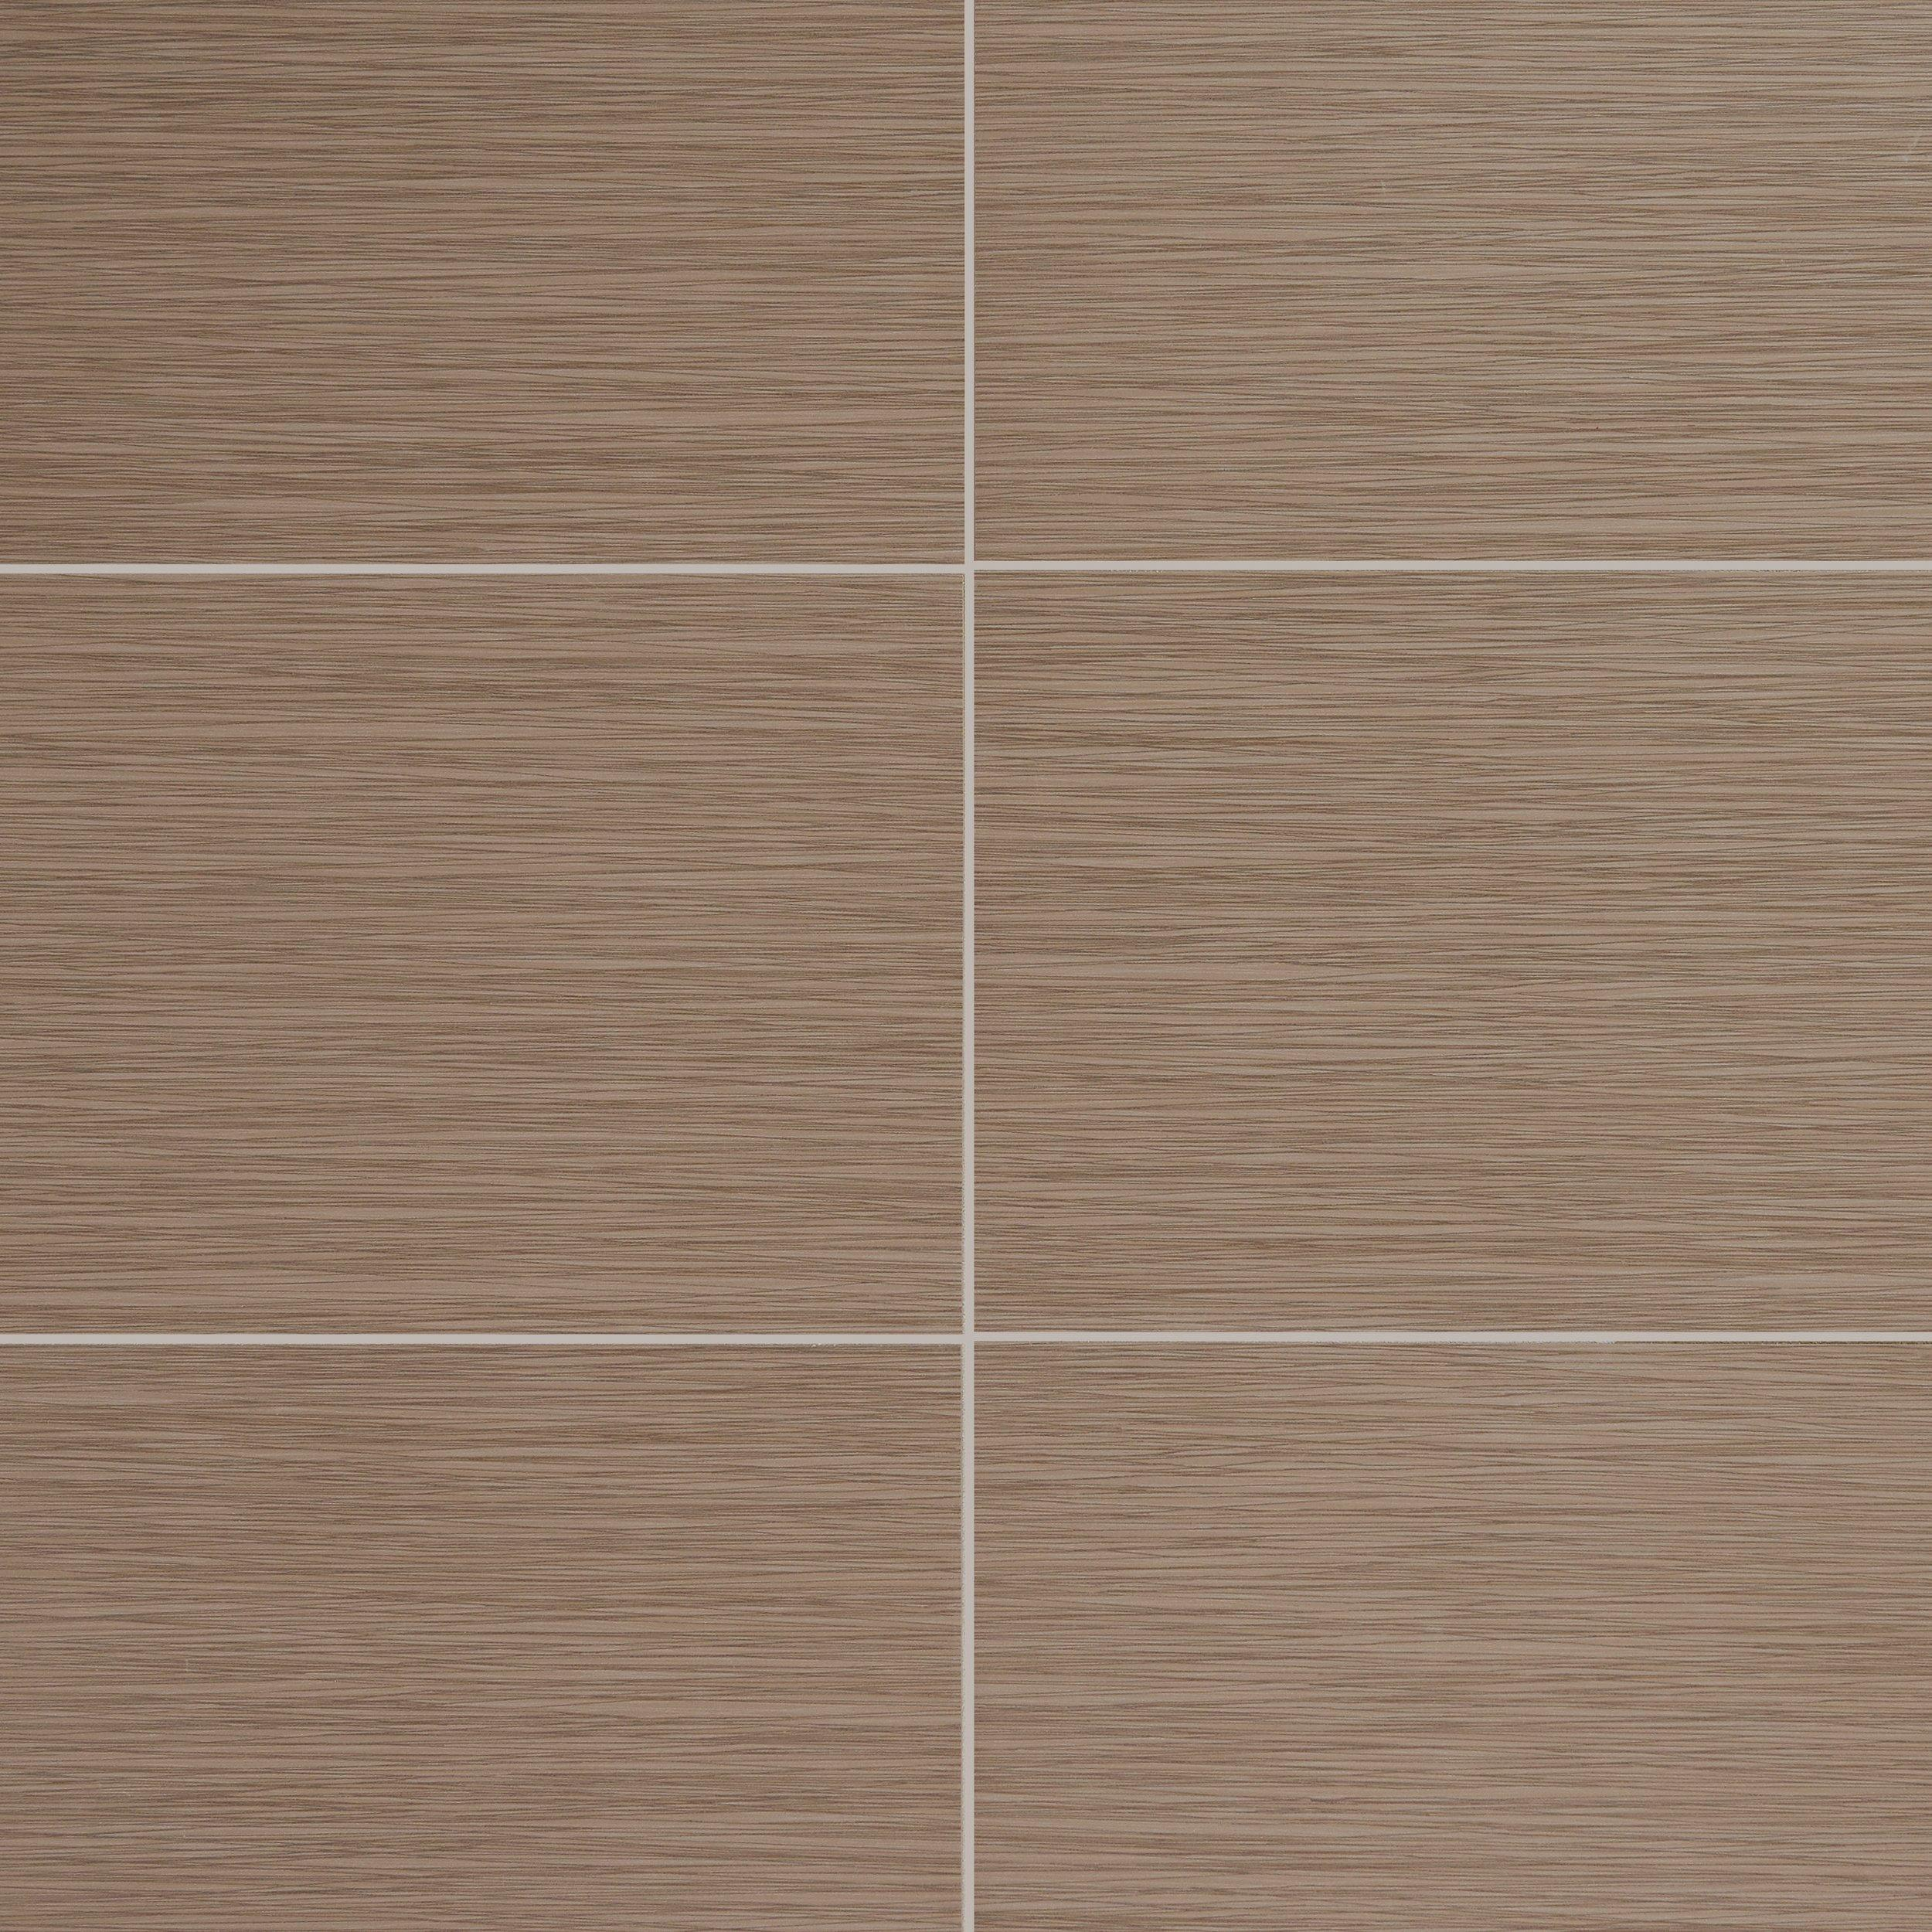 fibra merino porcelain tile 12in x 24in 100175694 floor fibra merino porcelain tile 12in x 24in 100175694 floor and decor